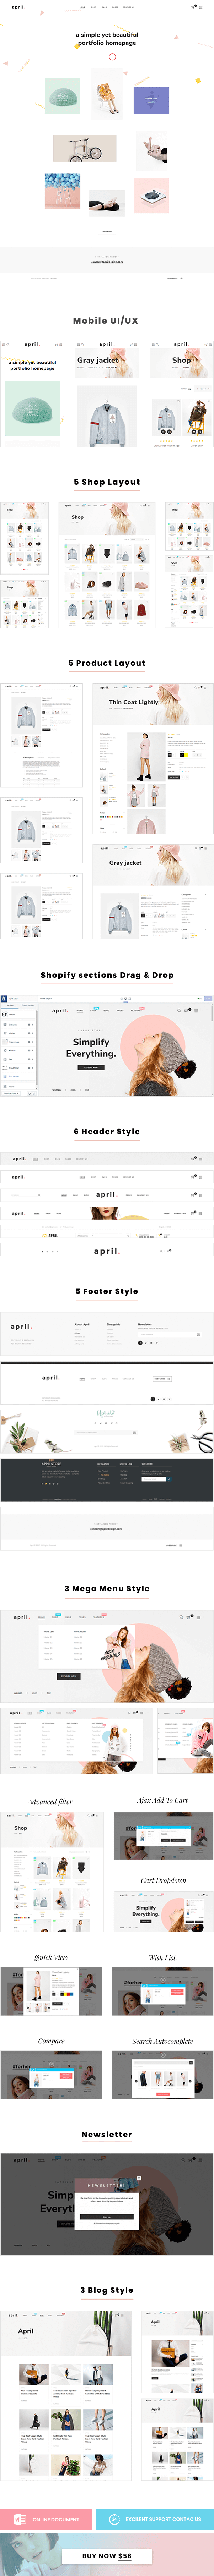 APRIL-19 - Great idea for portfolio homepage